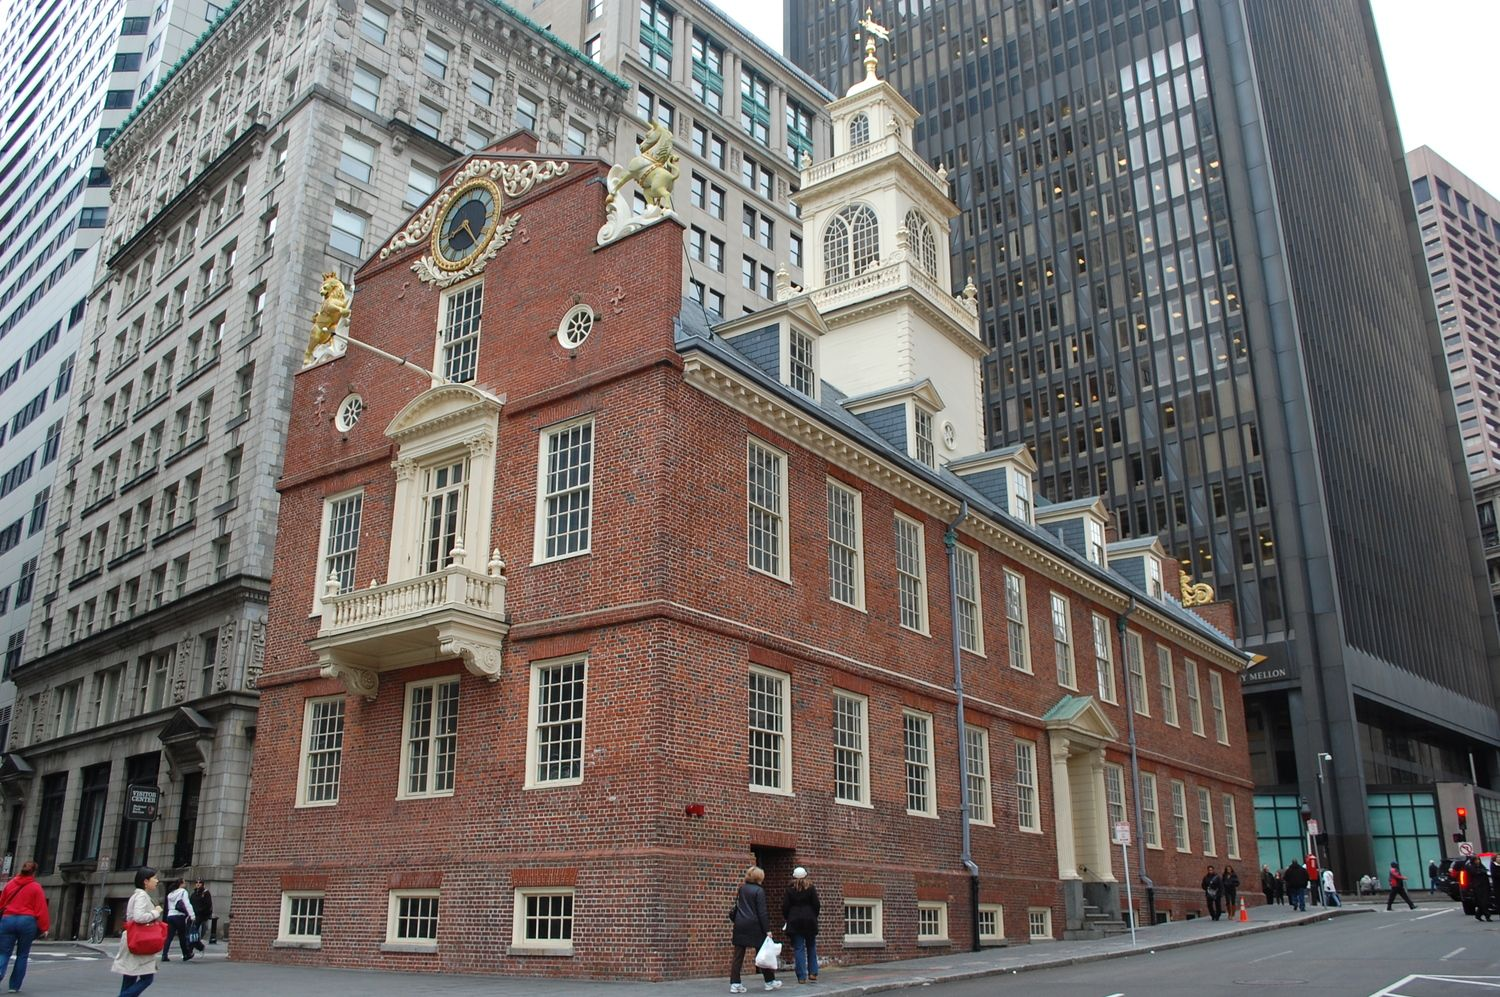 BOSTON — Explore the building which served as the center